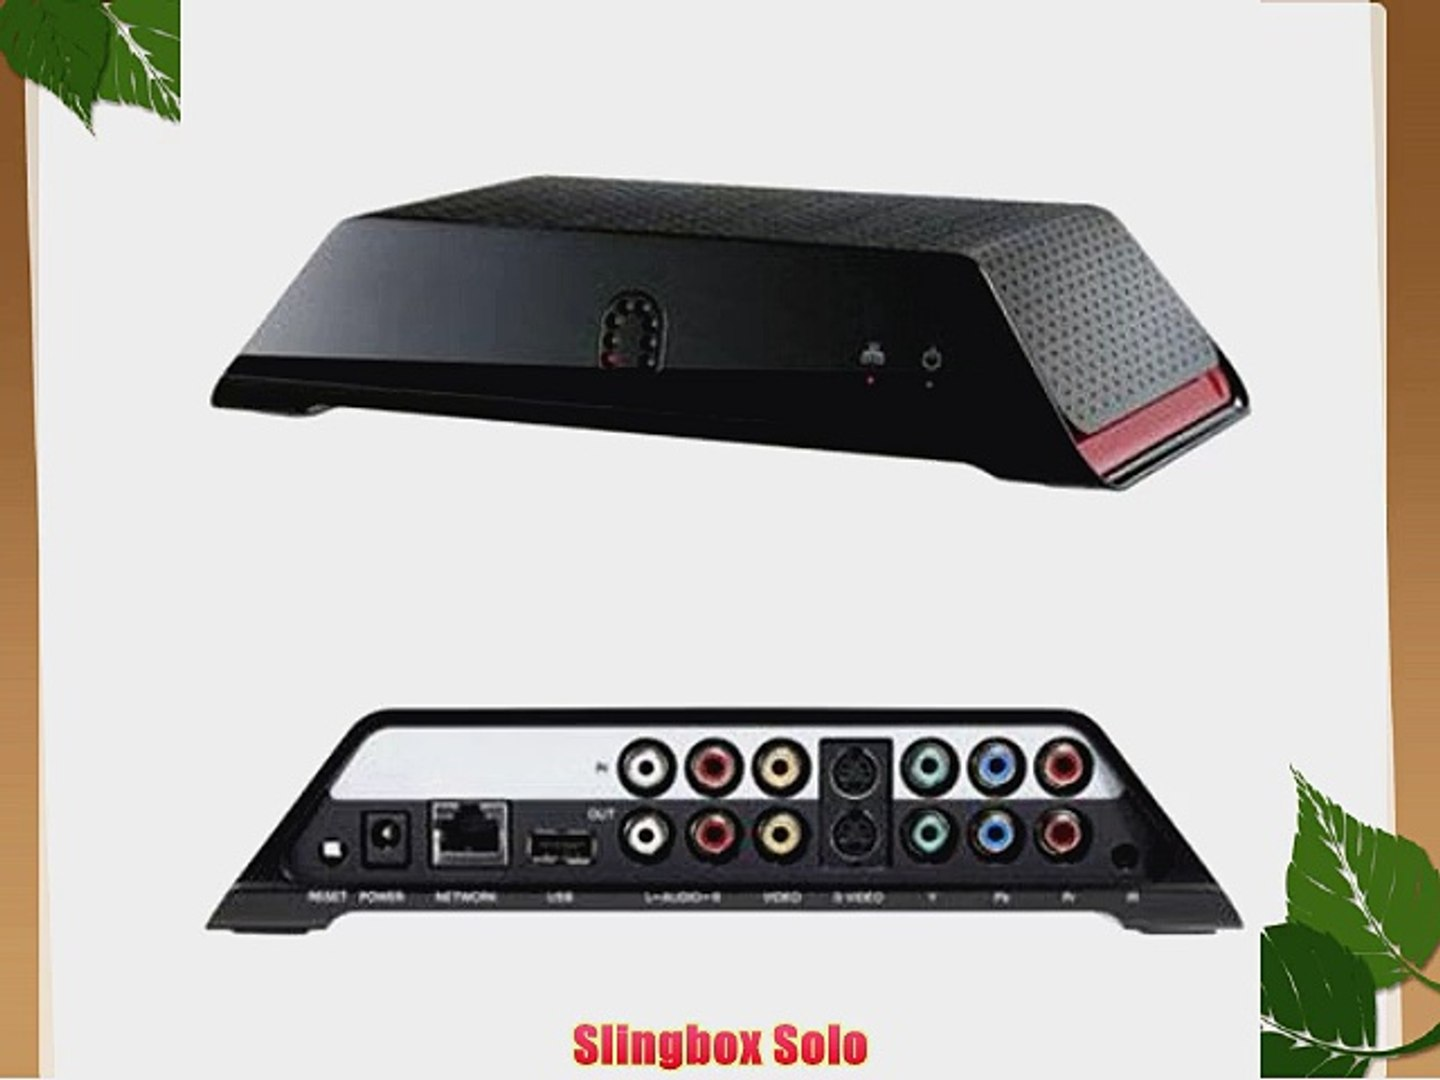 Slingbox Solo